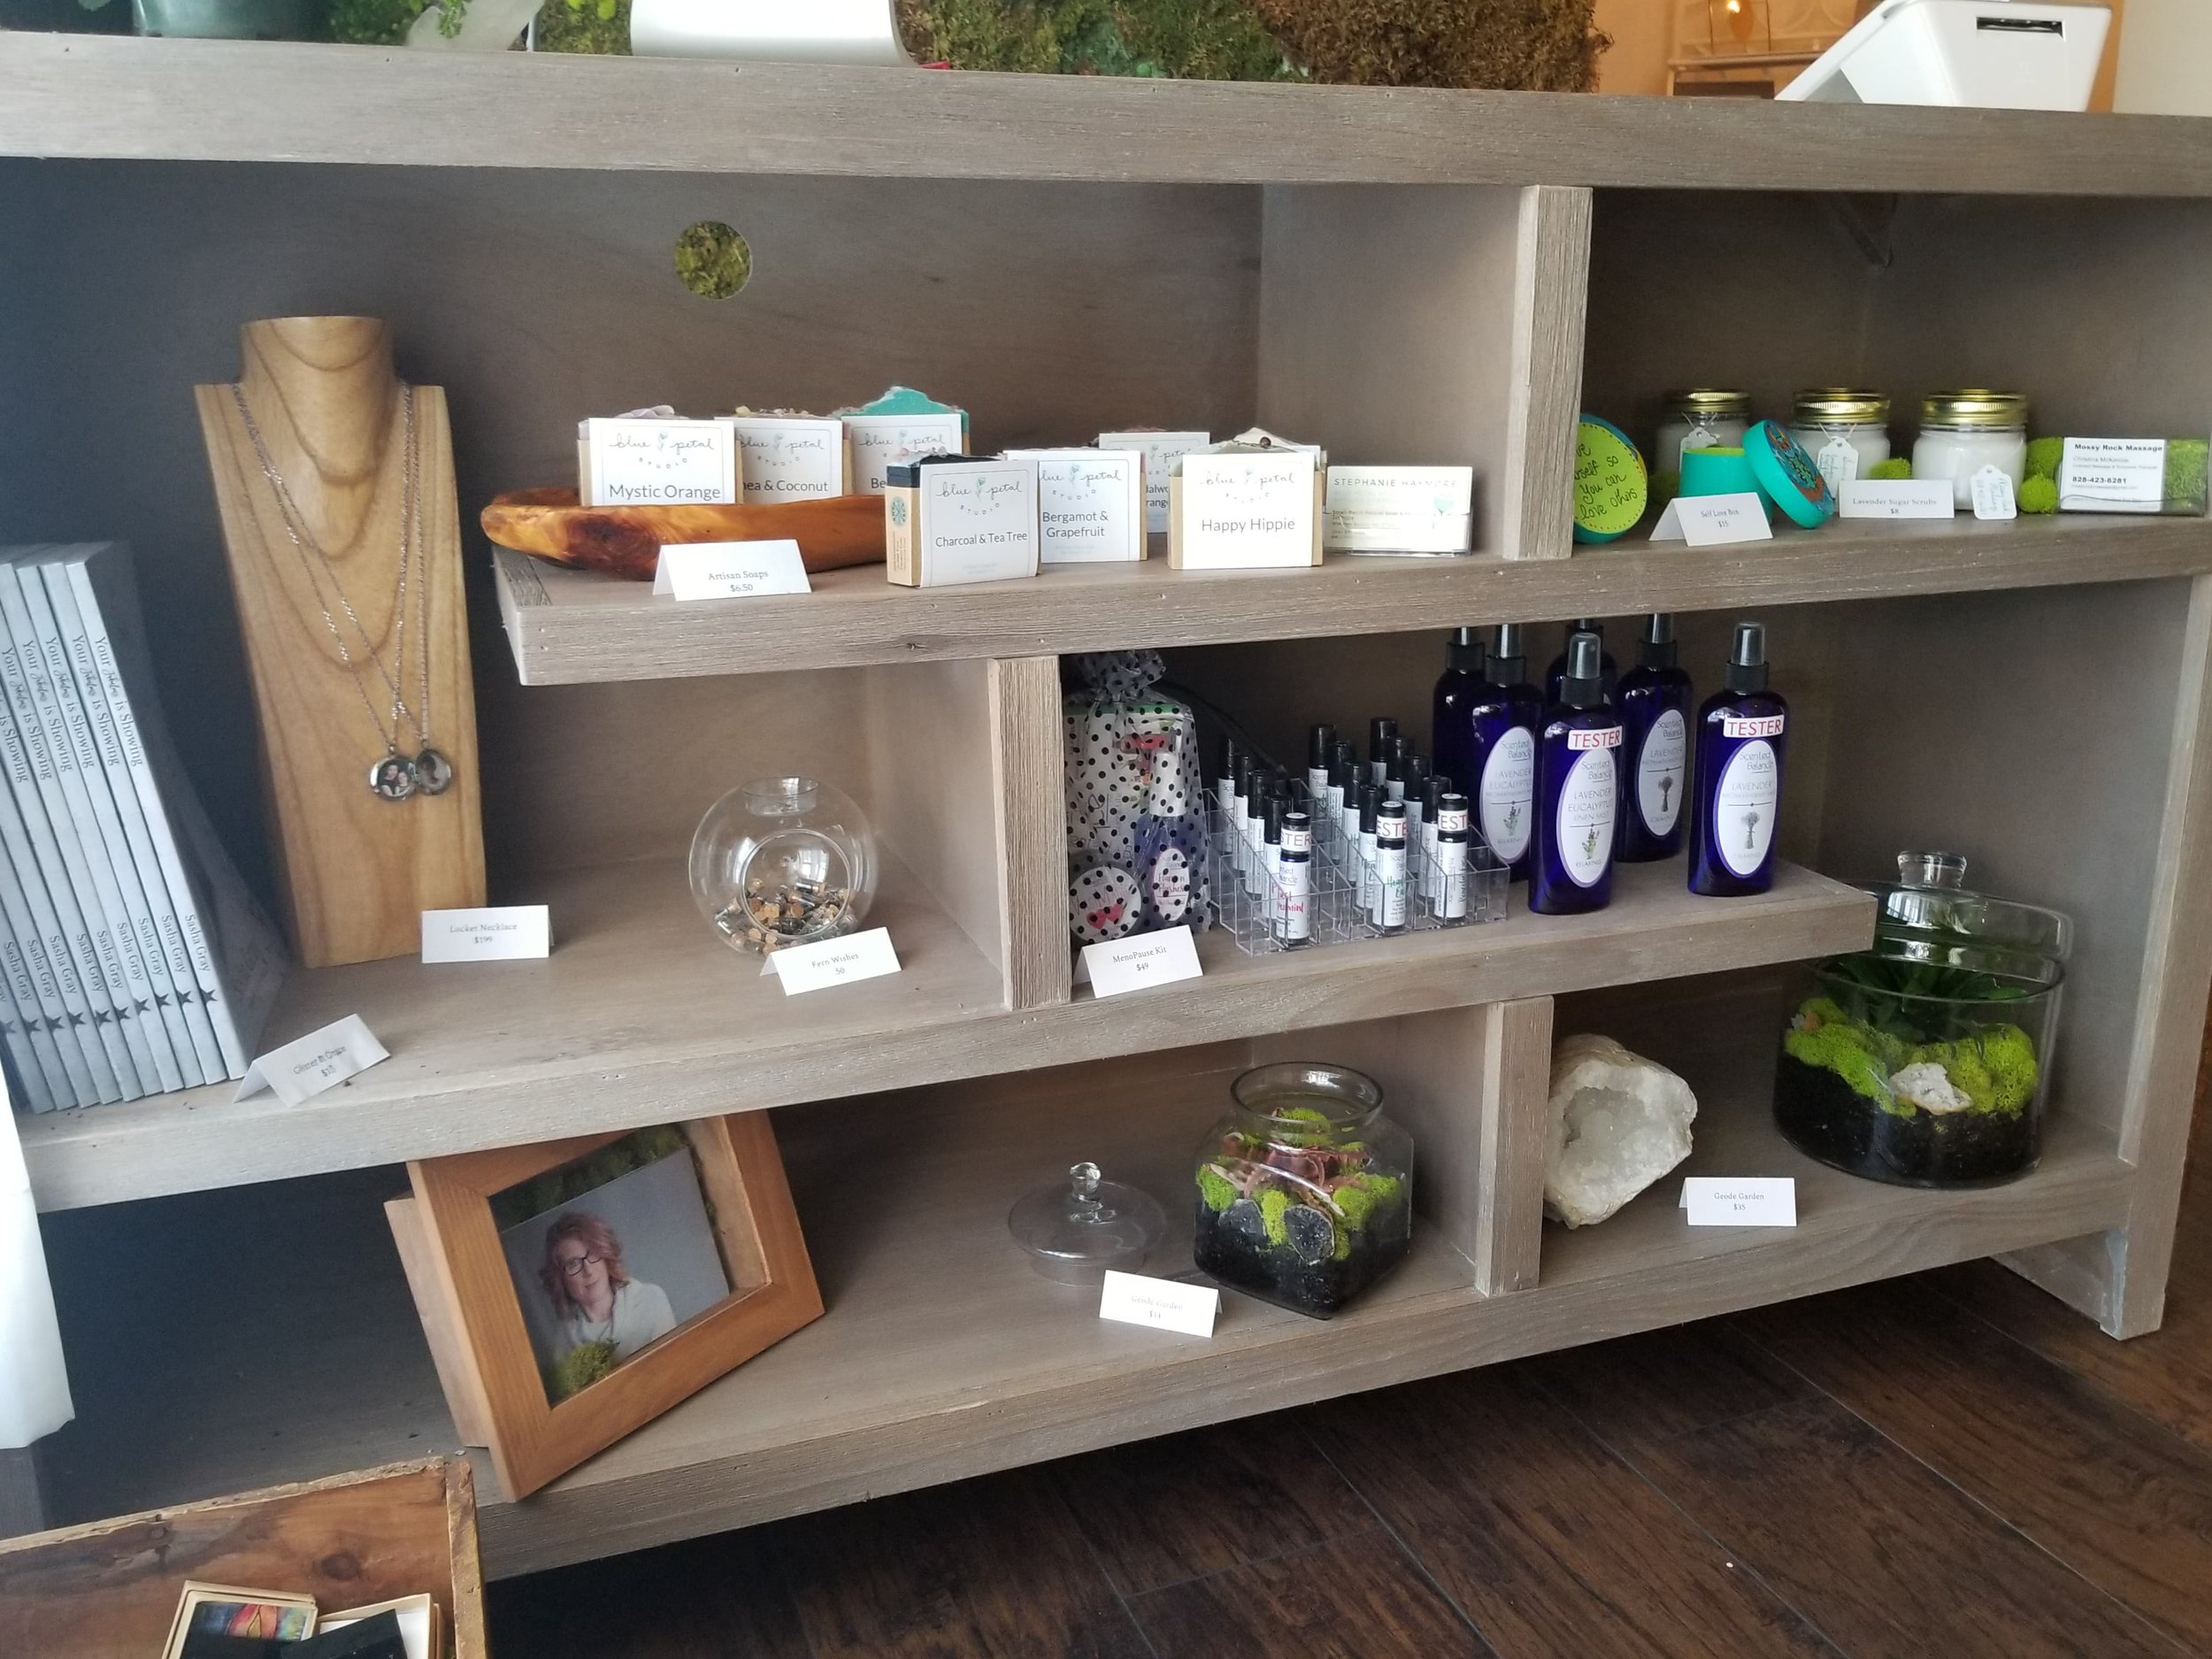 Local made products available for purchase at the Jasper & Fern Self Care Lounge in downtown Winston-Salem, NC